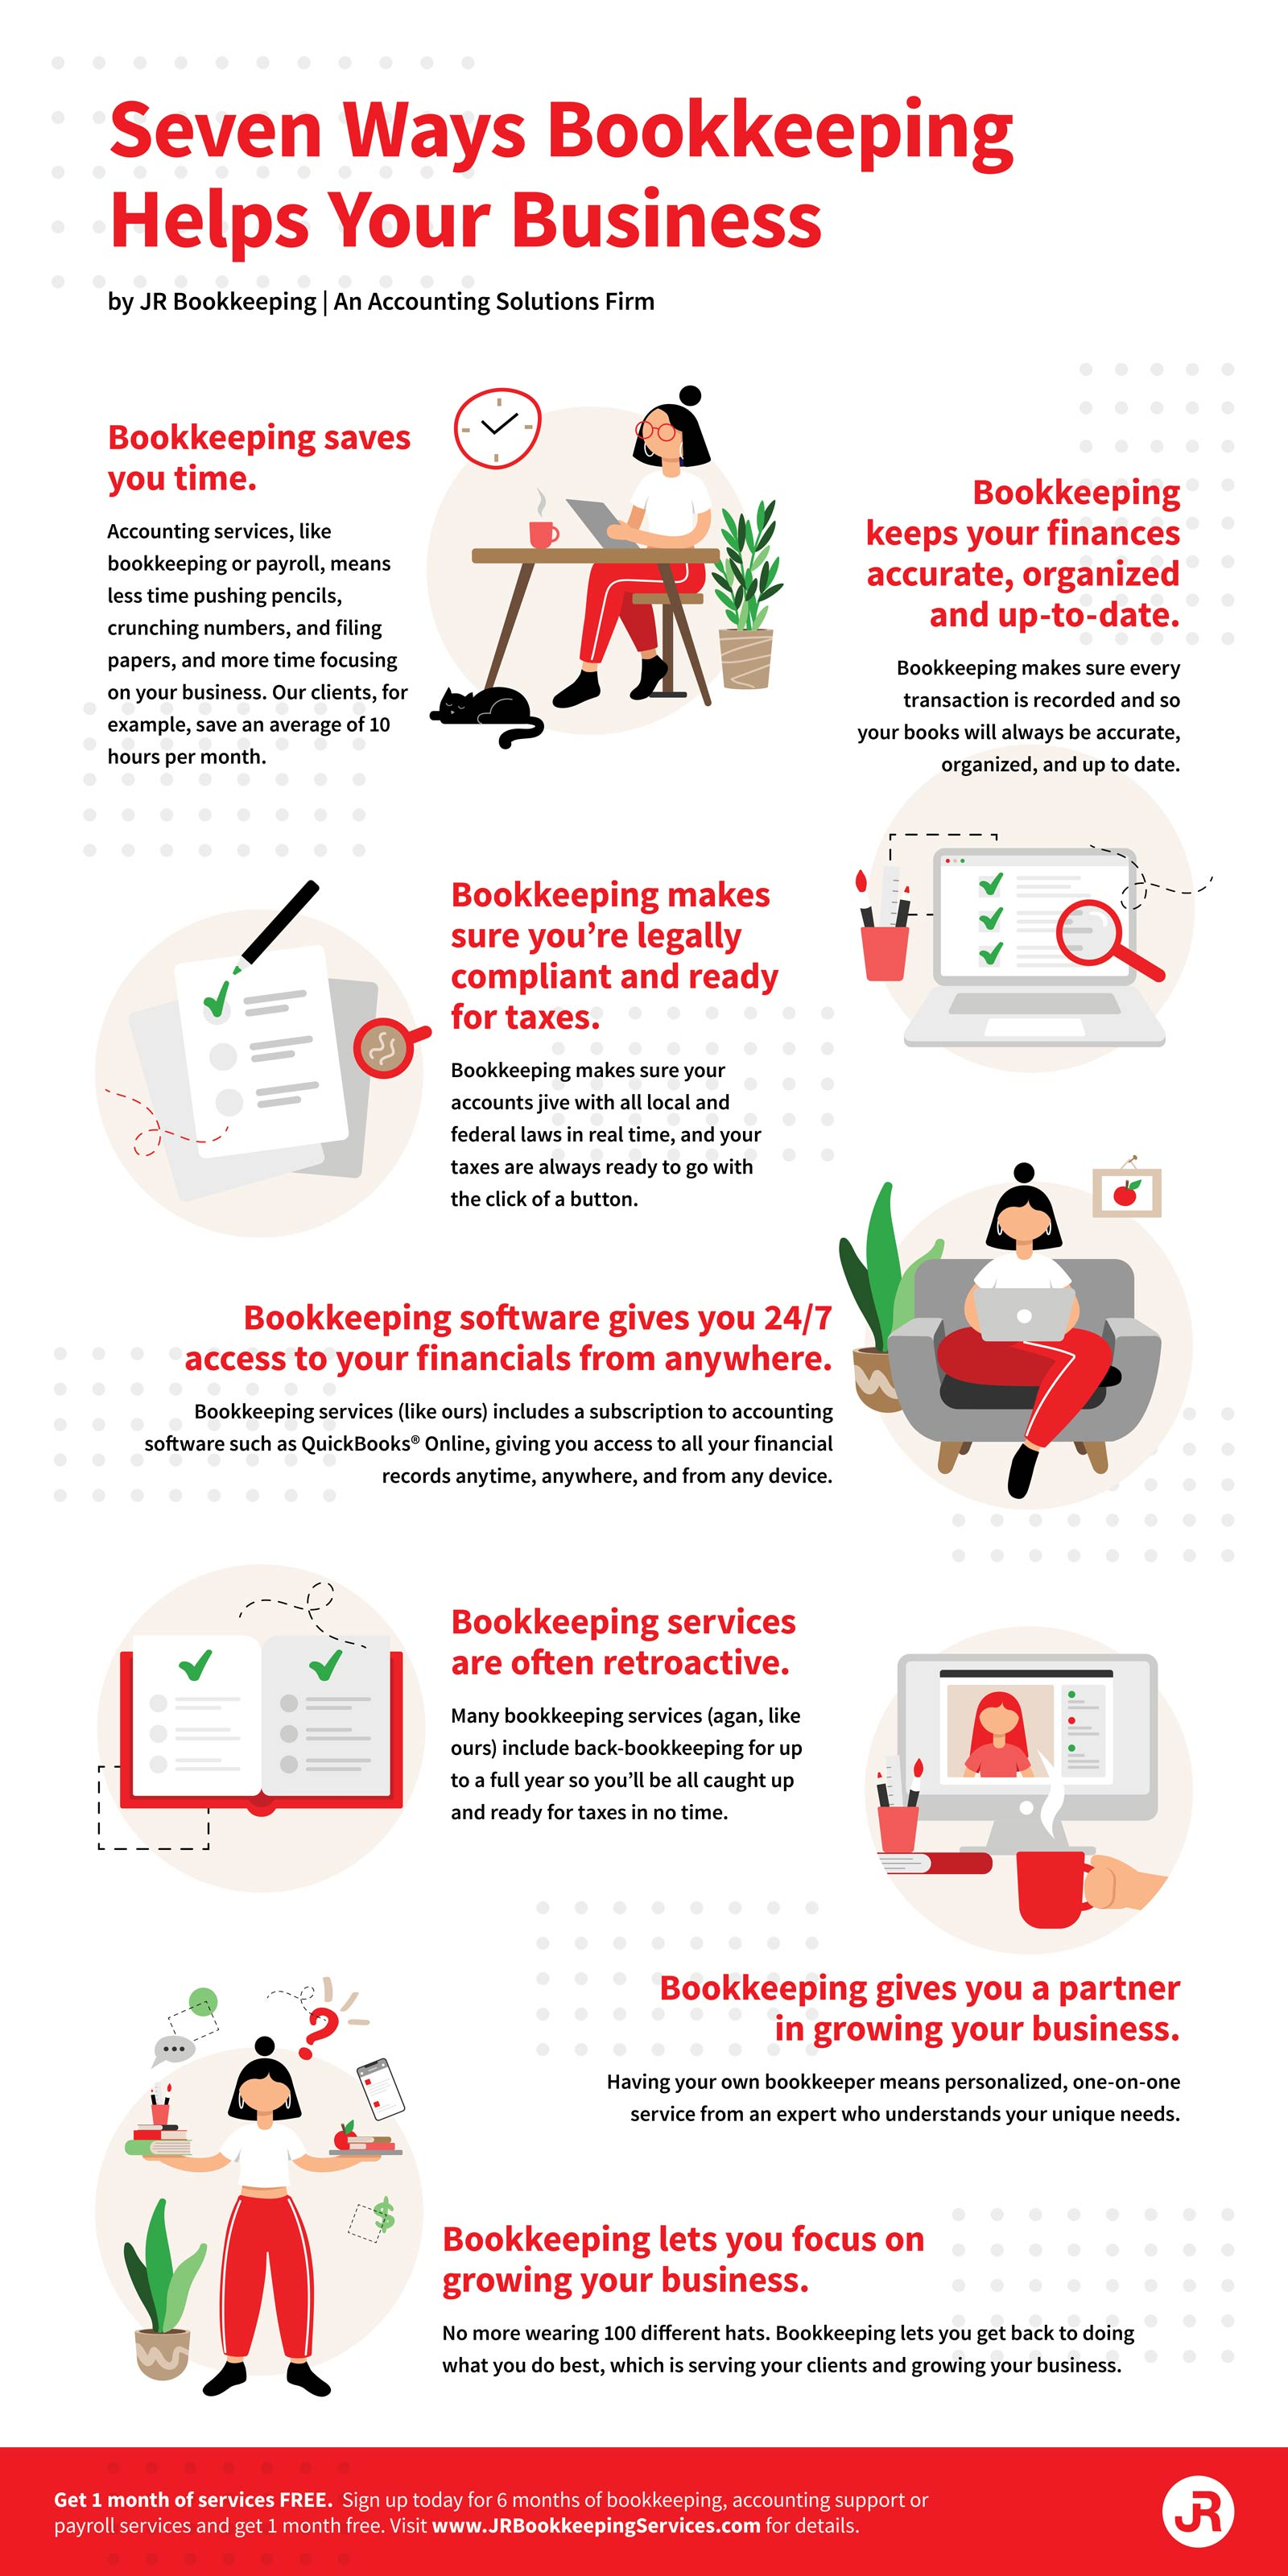 7 Ways Bookkeeping Helps Small Businesses infographic (1600 min)